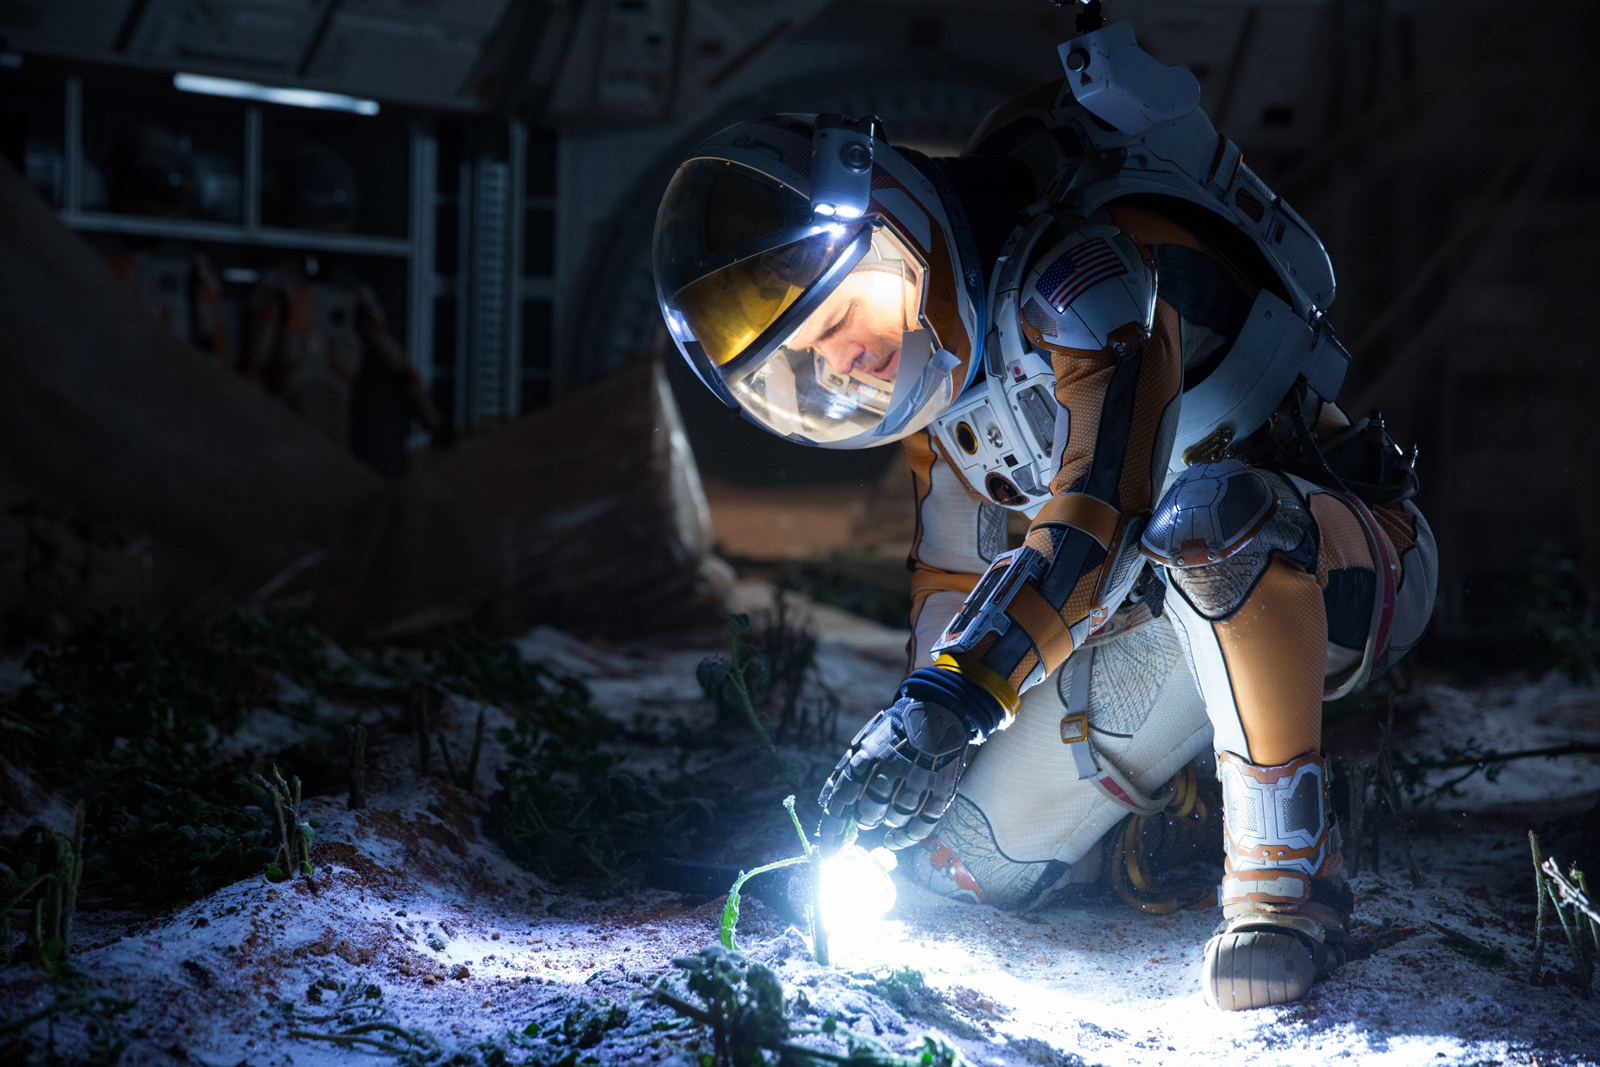 Matt Damon - The Martian